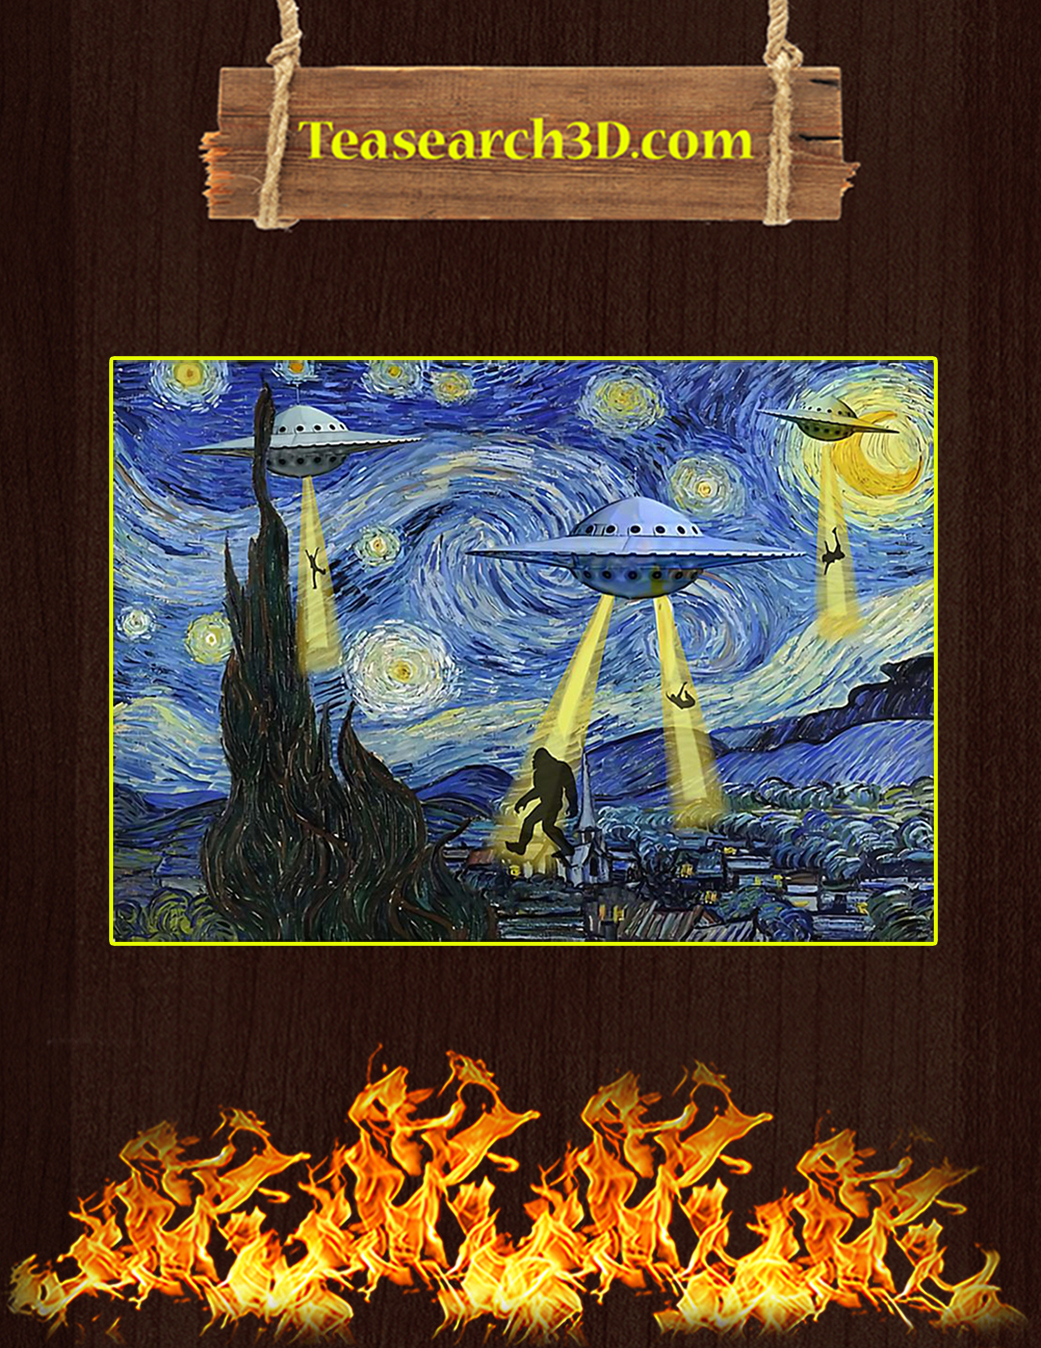 Ufo sighting starry night van gogh poster A1